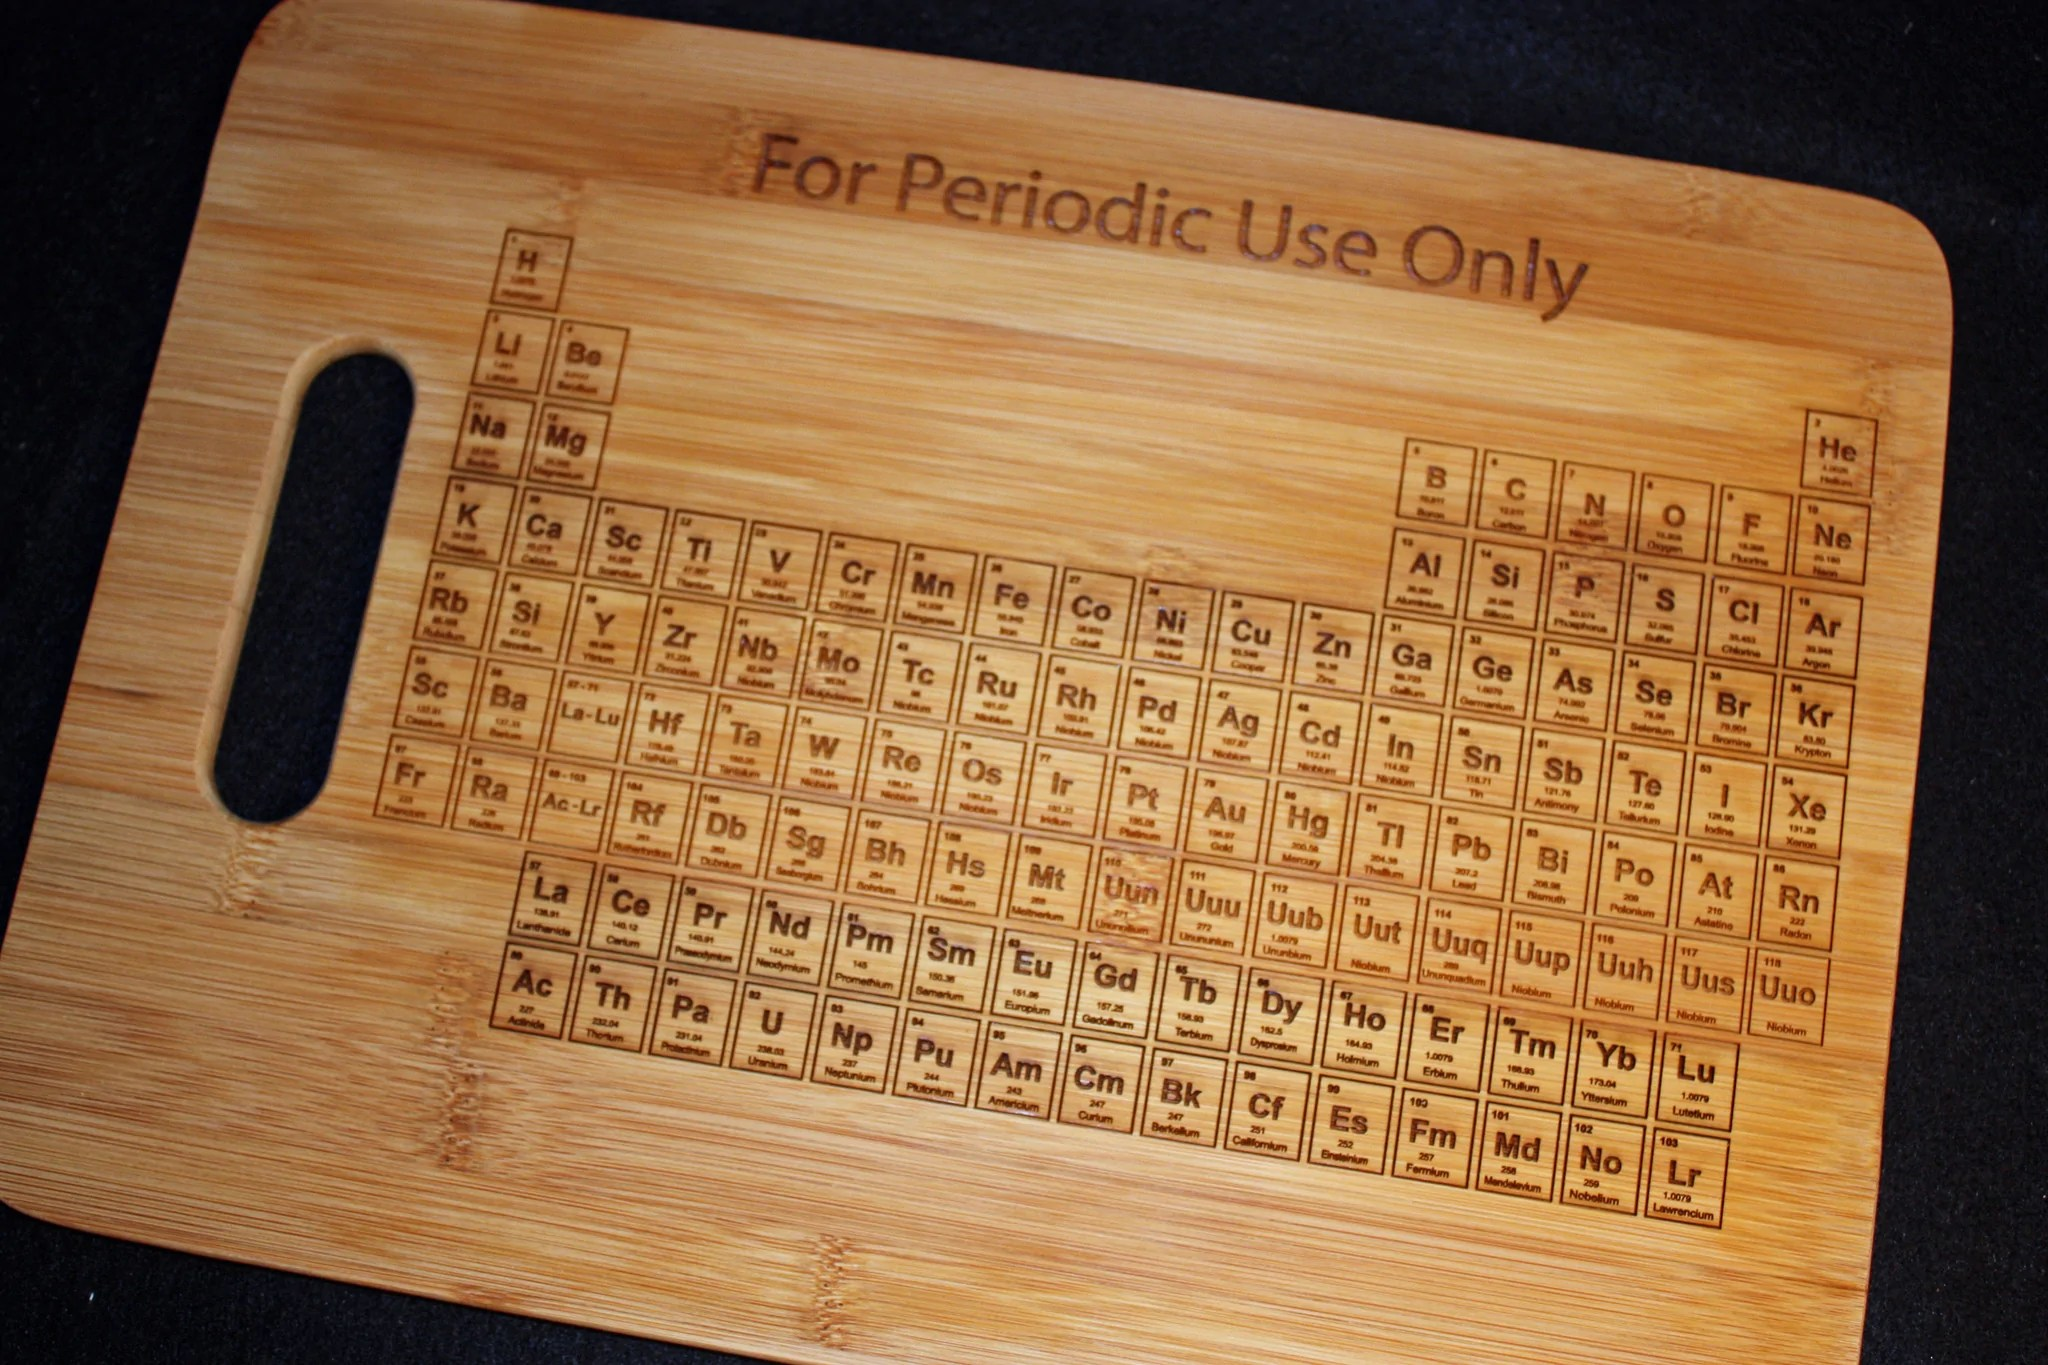 I Use This Cutting Board Periodically Periodict Table Cutting Board Quantity 30 The